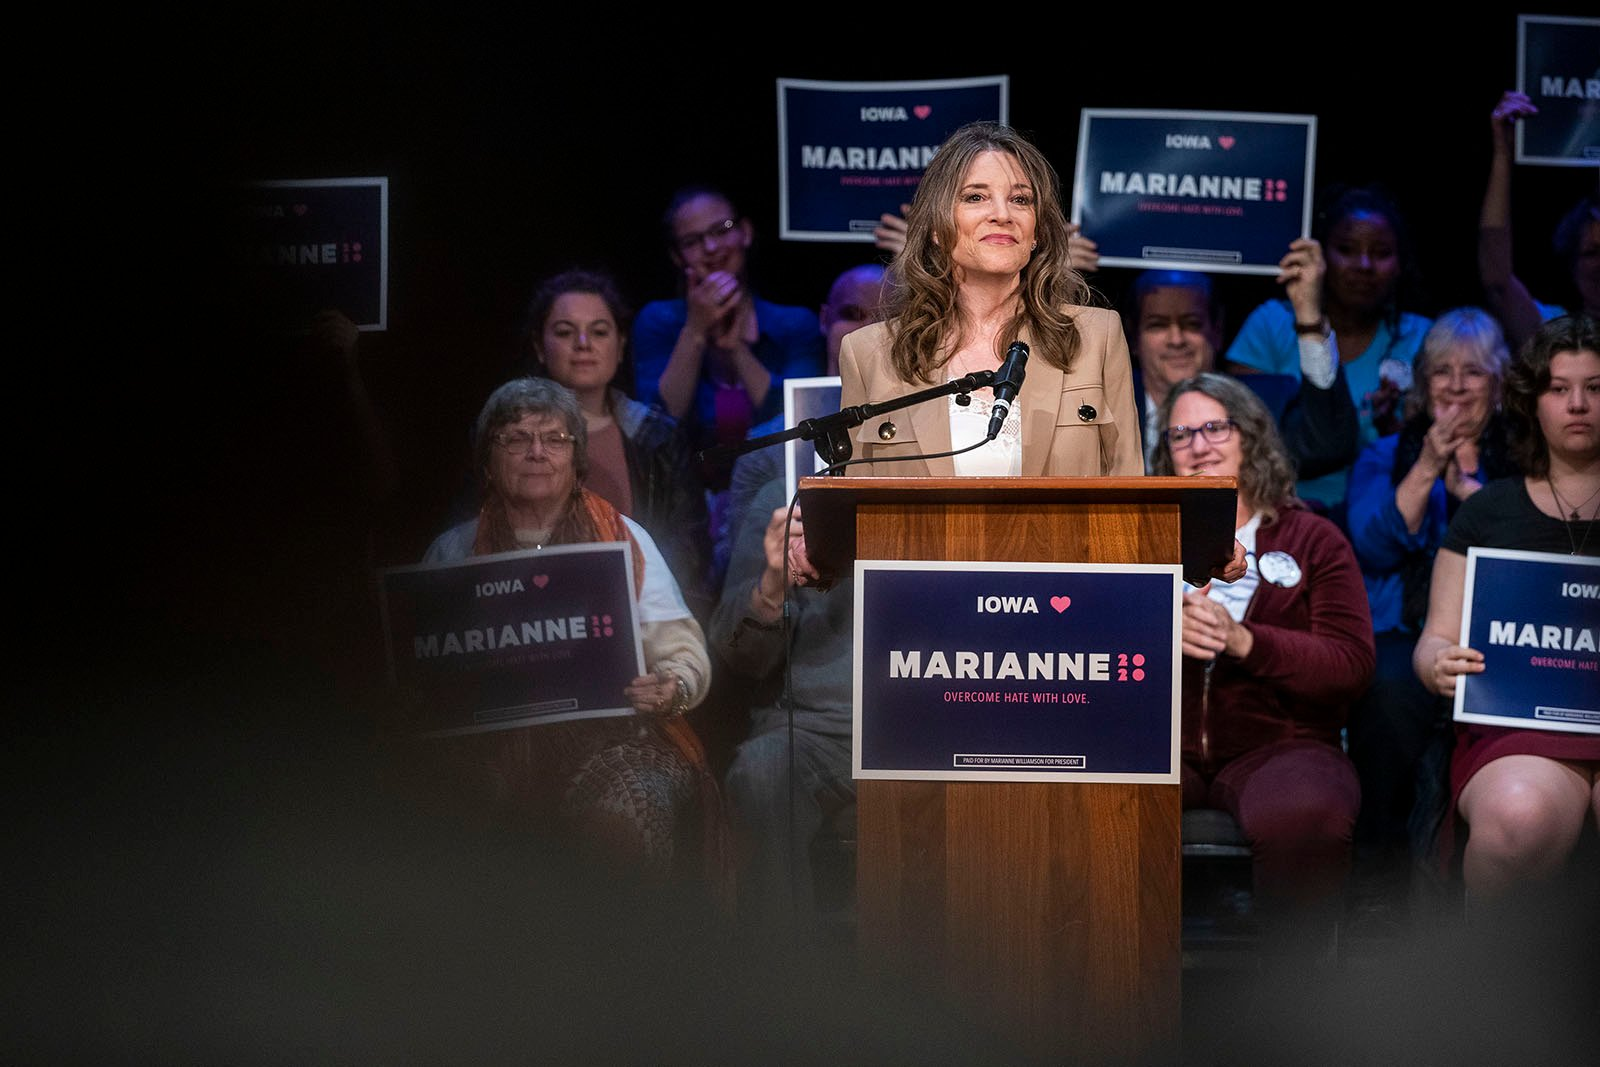 Marianne Williamson's metaphysical campaign for president